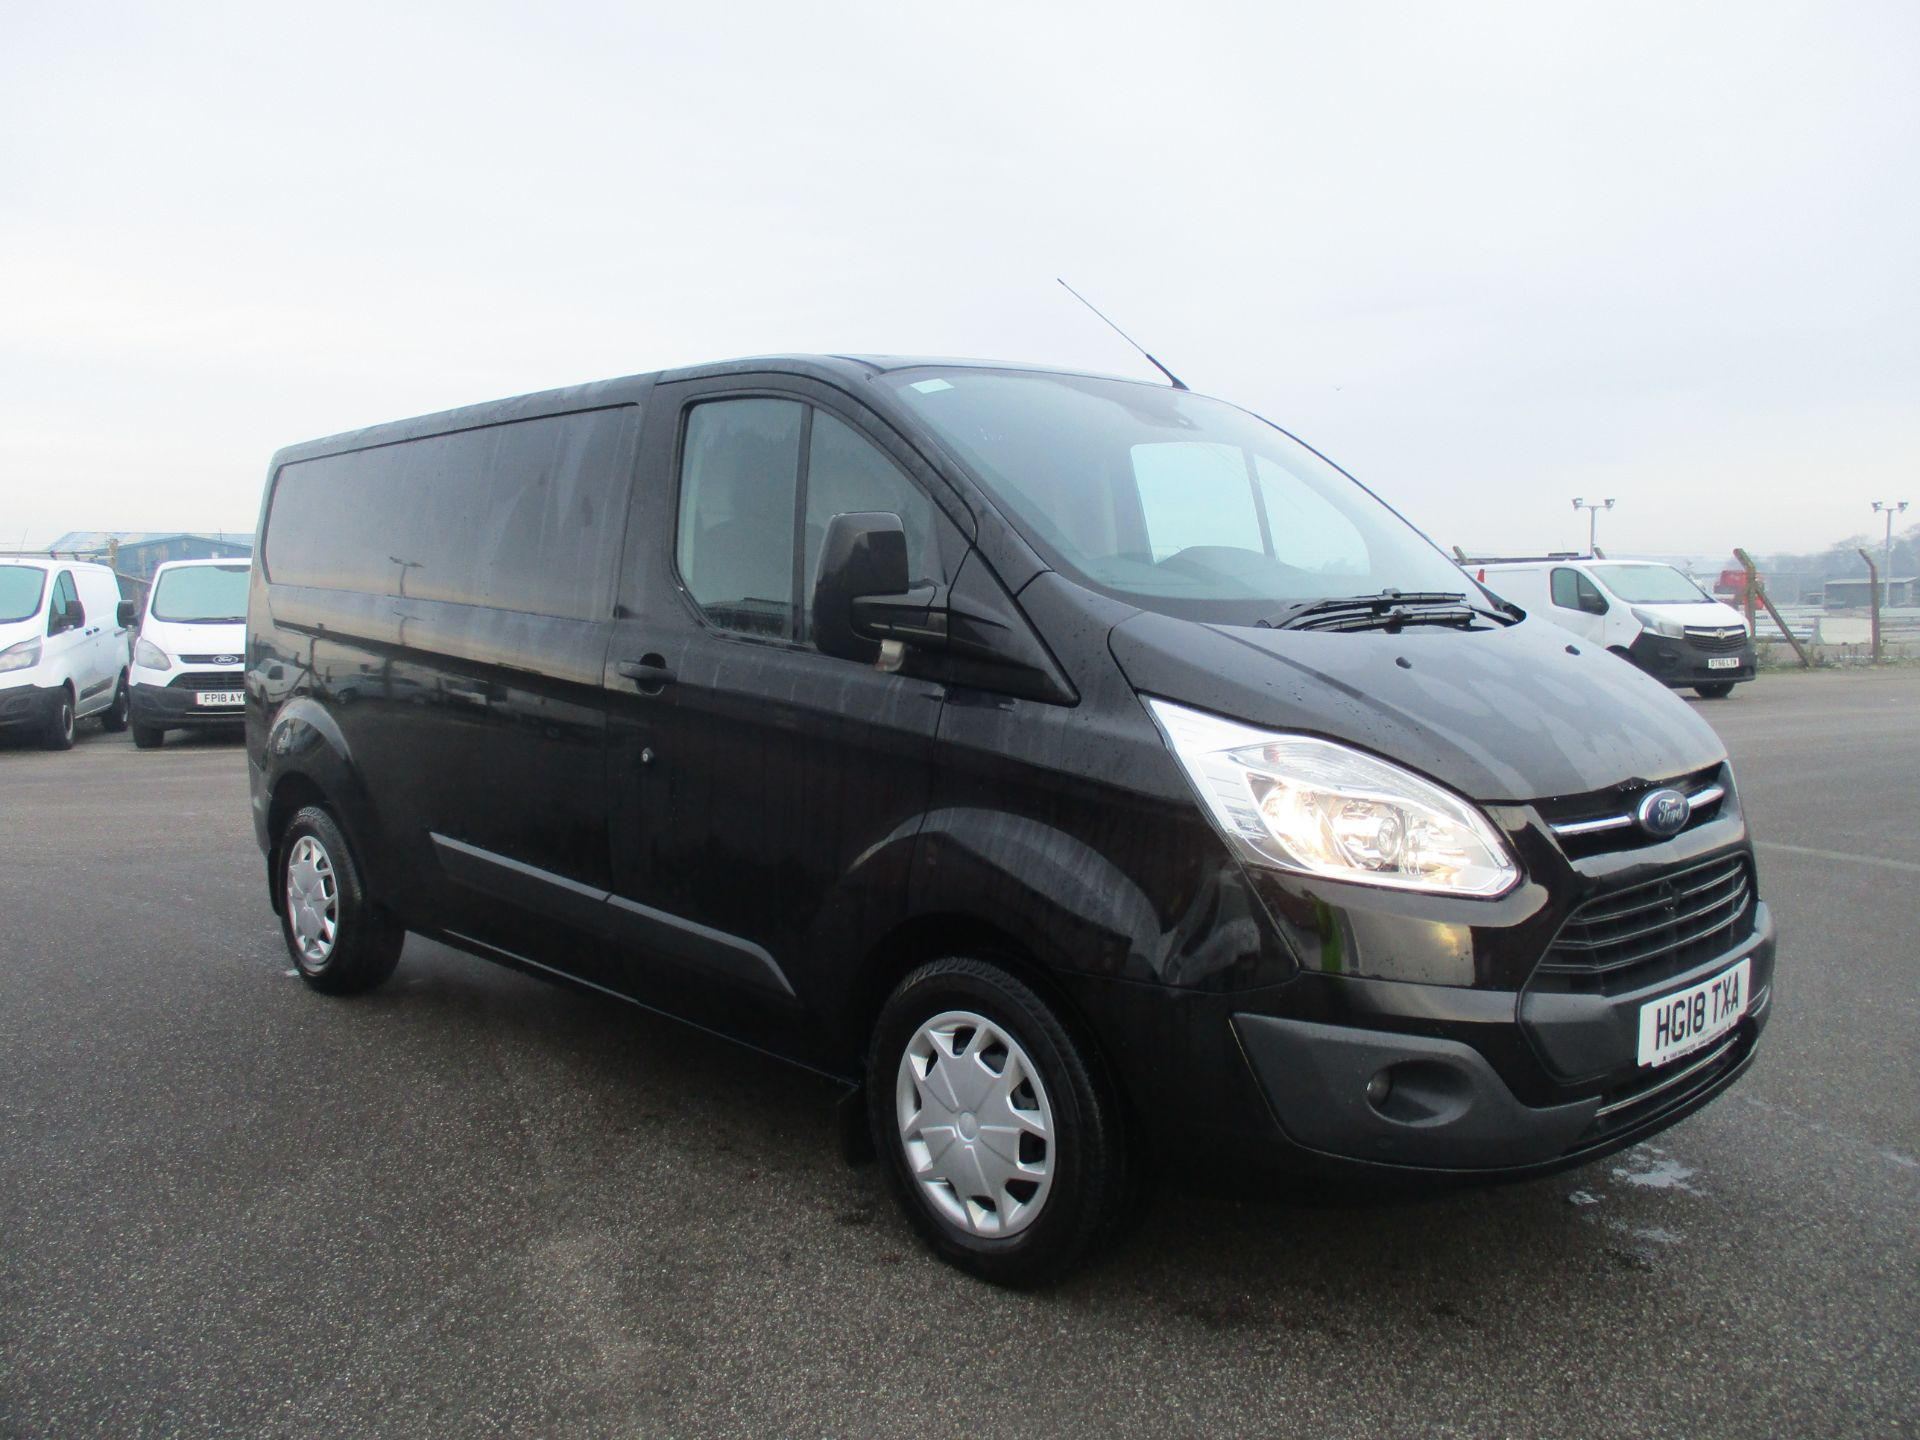 2018 Ford Transit Custom 290 2.0 TDCI 130PS L2 H1 Trend AUTOMATIC Low Roof Panel Van (HG18TXA)